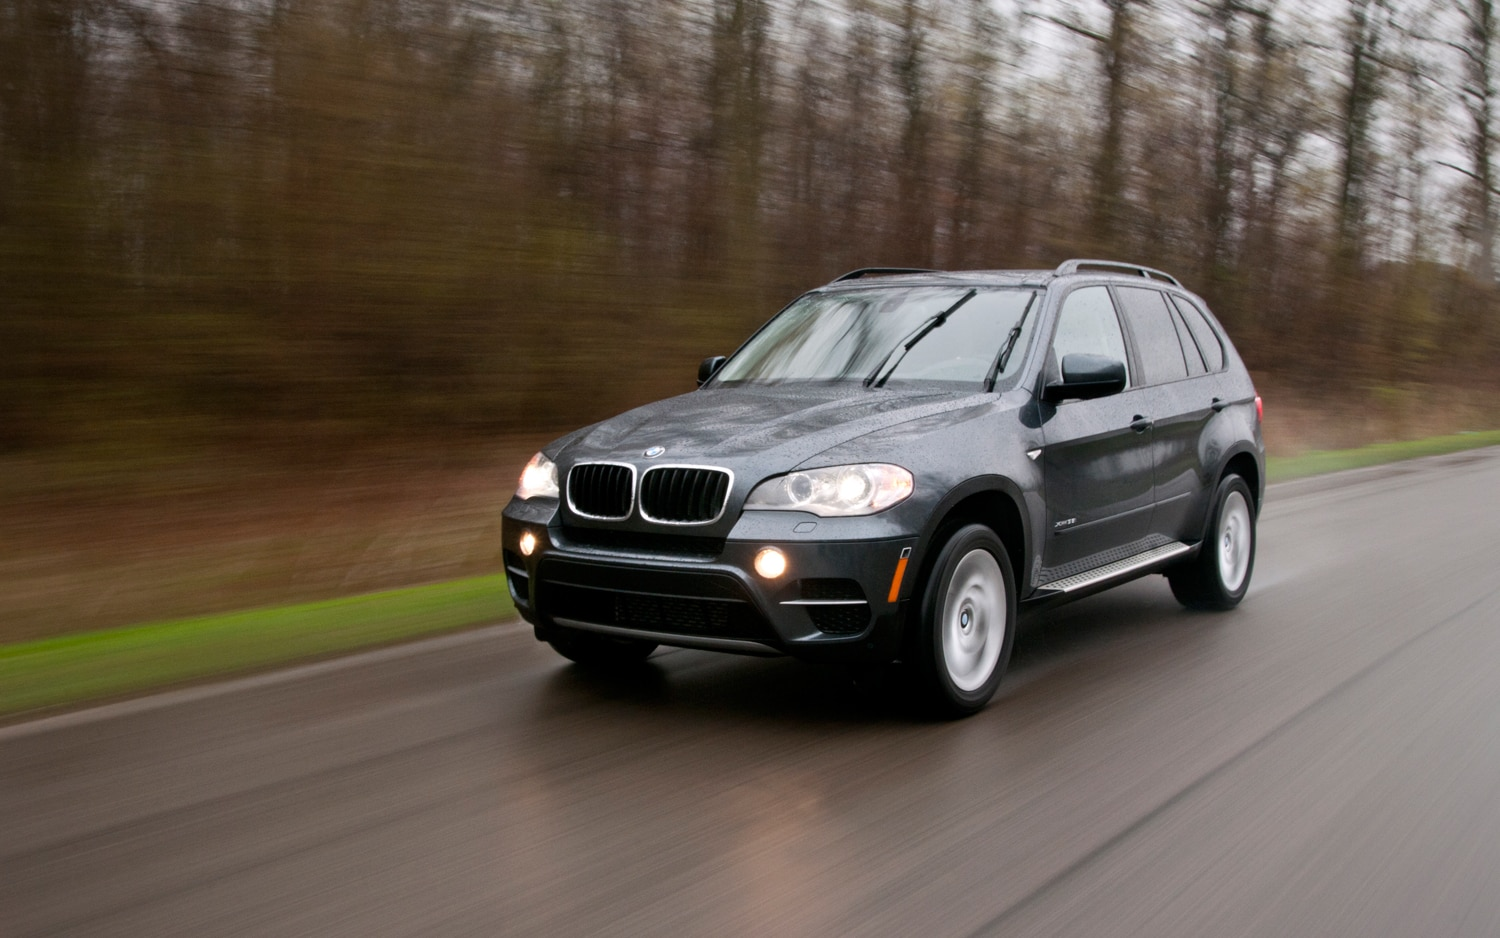 2012 BMW X5 XDrive35i Premium Front Left View1